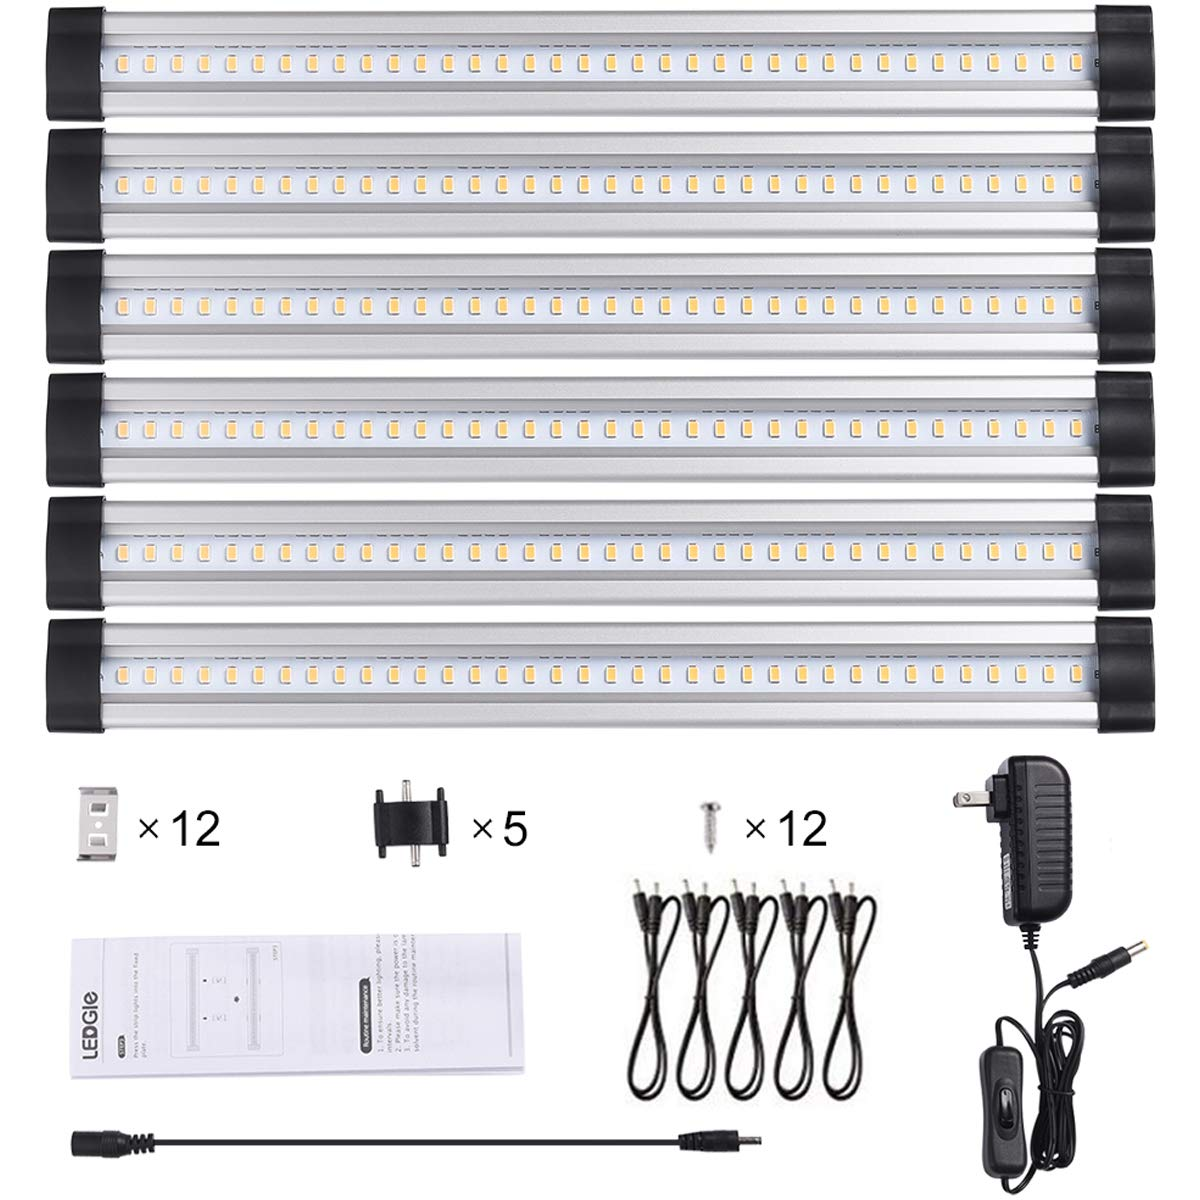 LEDGLE 24W LED Under Cabinet Lighting Kit Plug in,6 pcs 12 Inches Cabinet Light Strips, 1920 Lumen, for Kitchen Cabinets Counter, Closet, Shelf Lights,Warm White 3000K, All Accessories Included